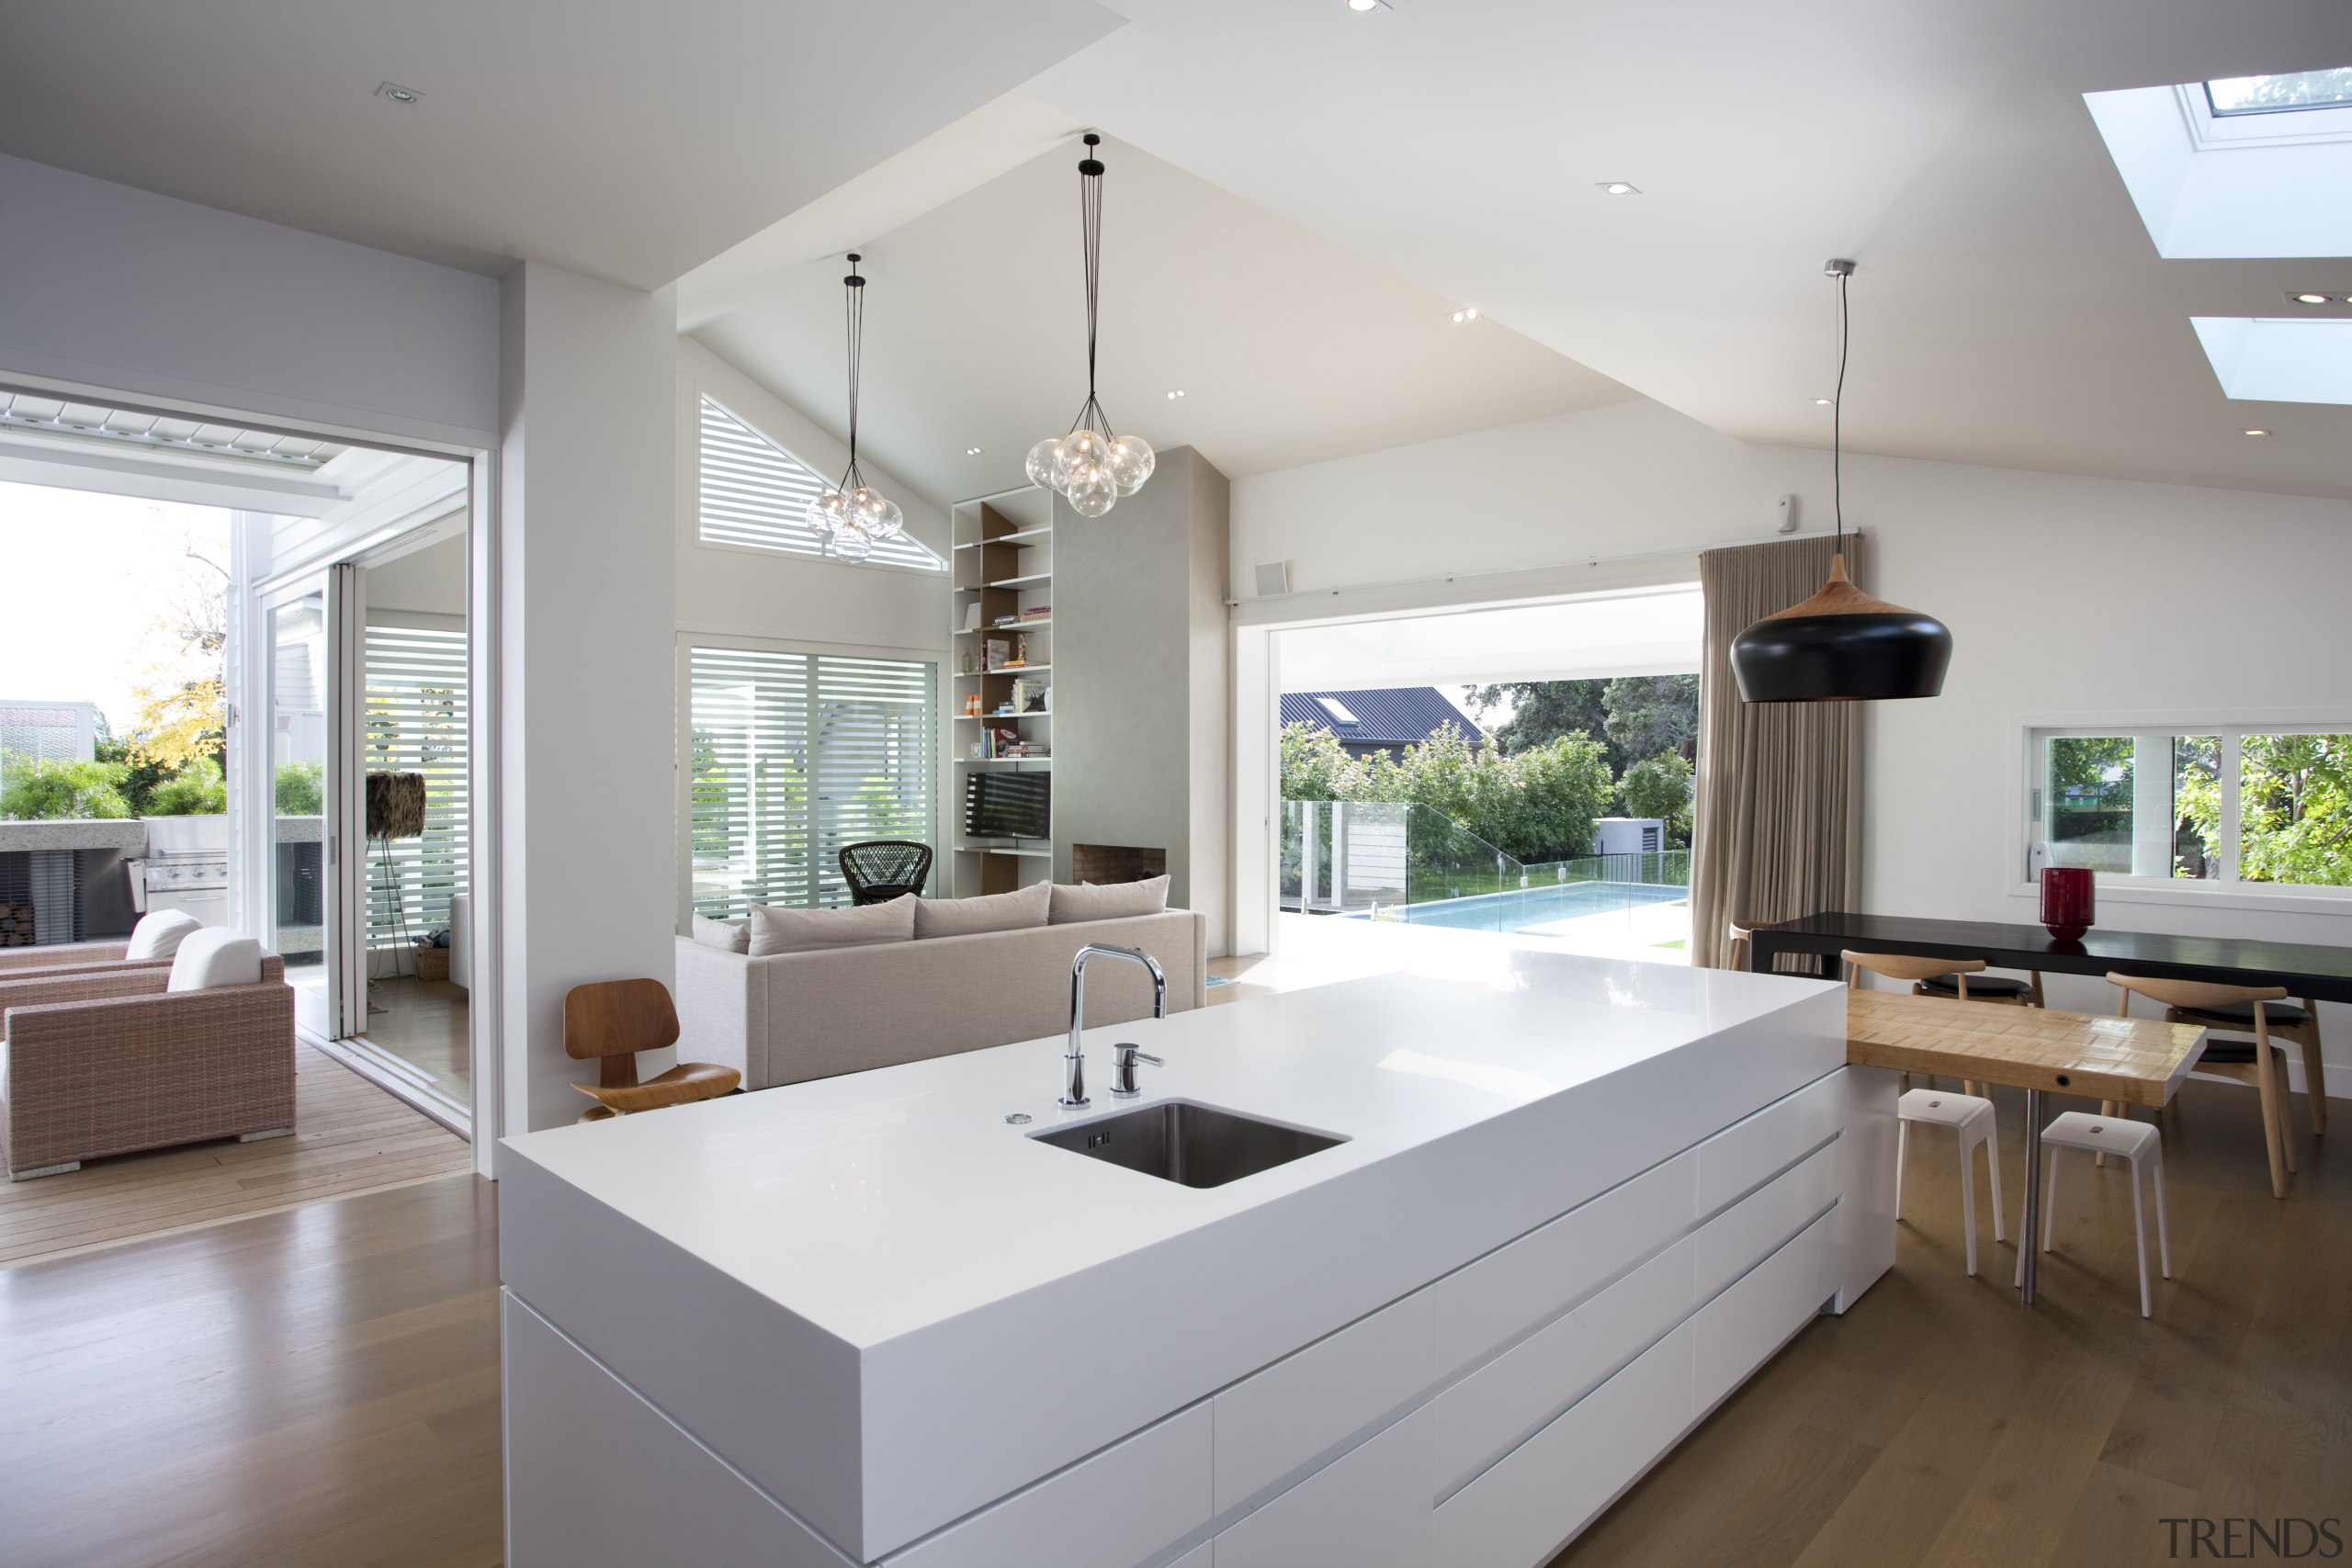 This kitchen and living room in a renovated architecture, countertop, house, interior design, kitchen, living room, real estate, gray, white